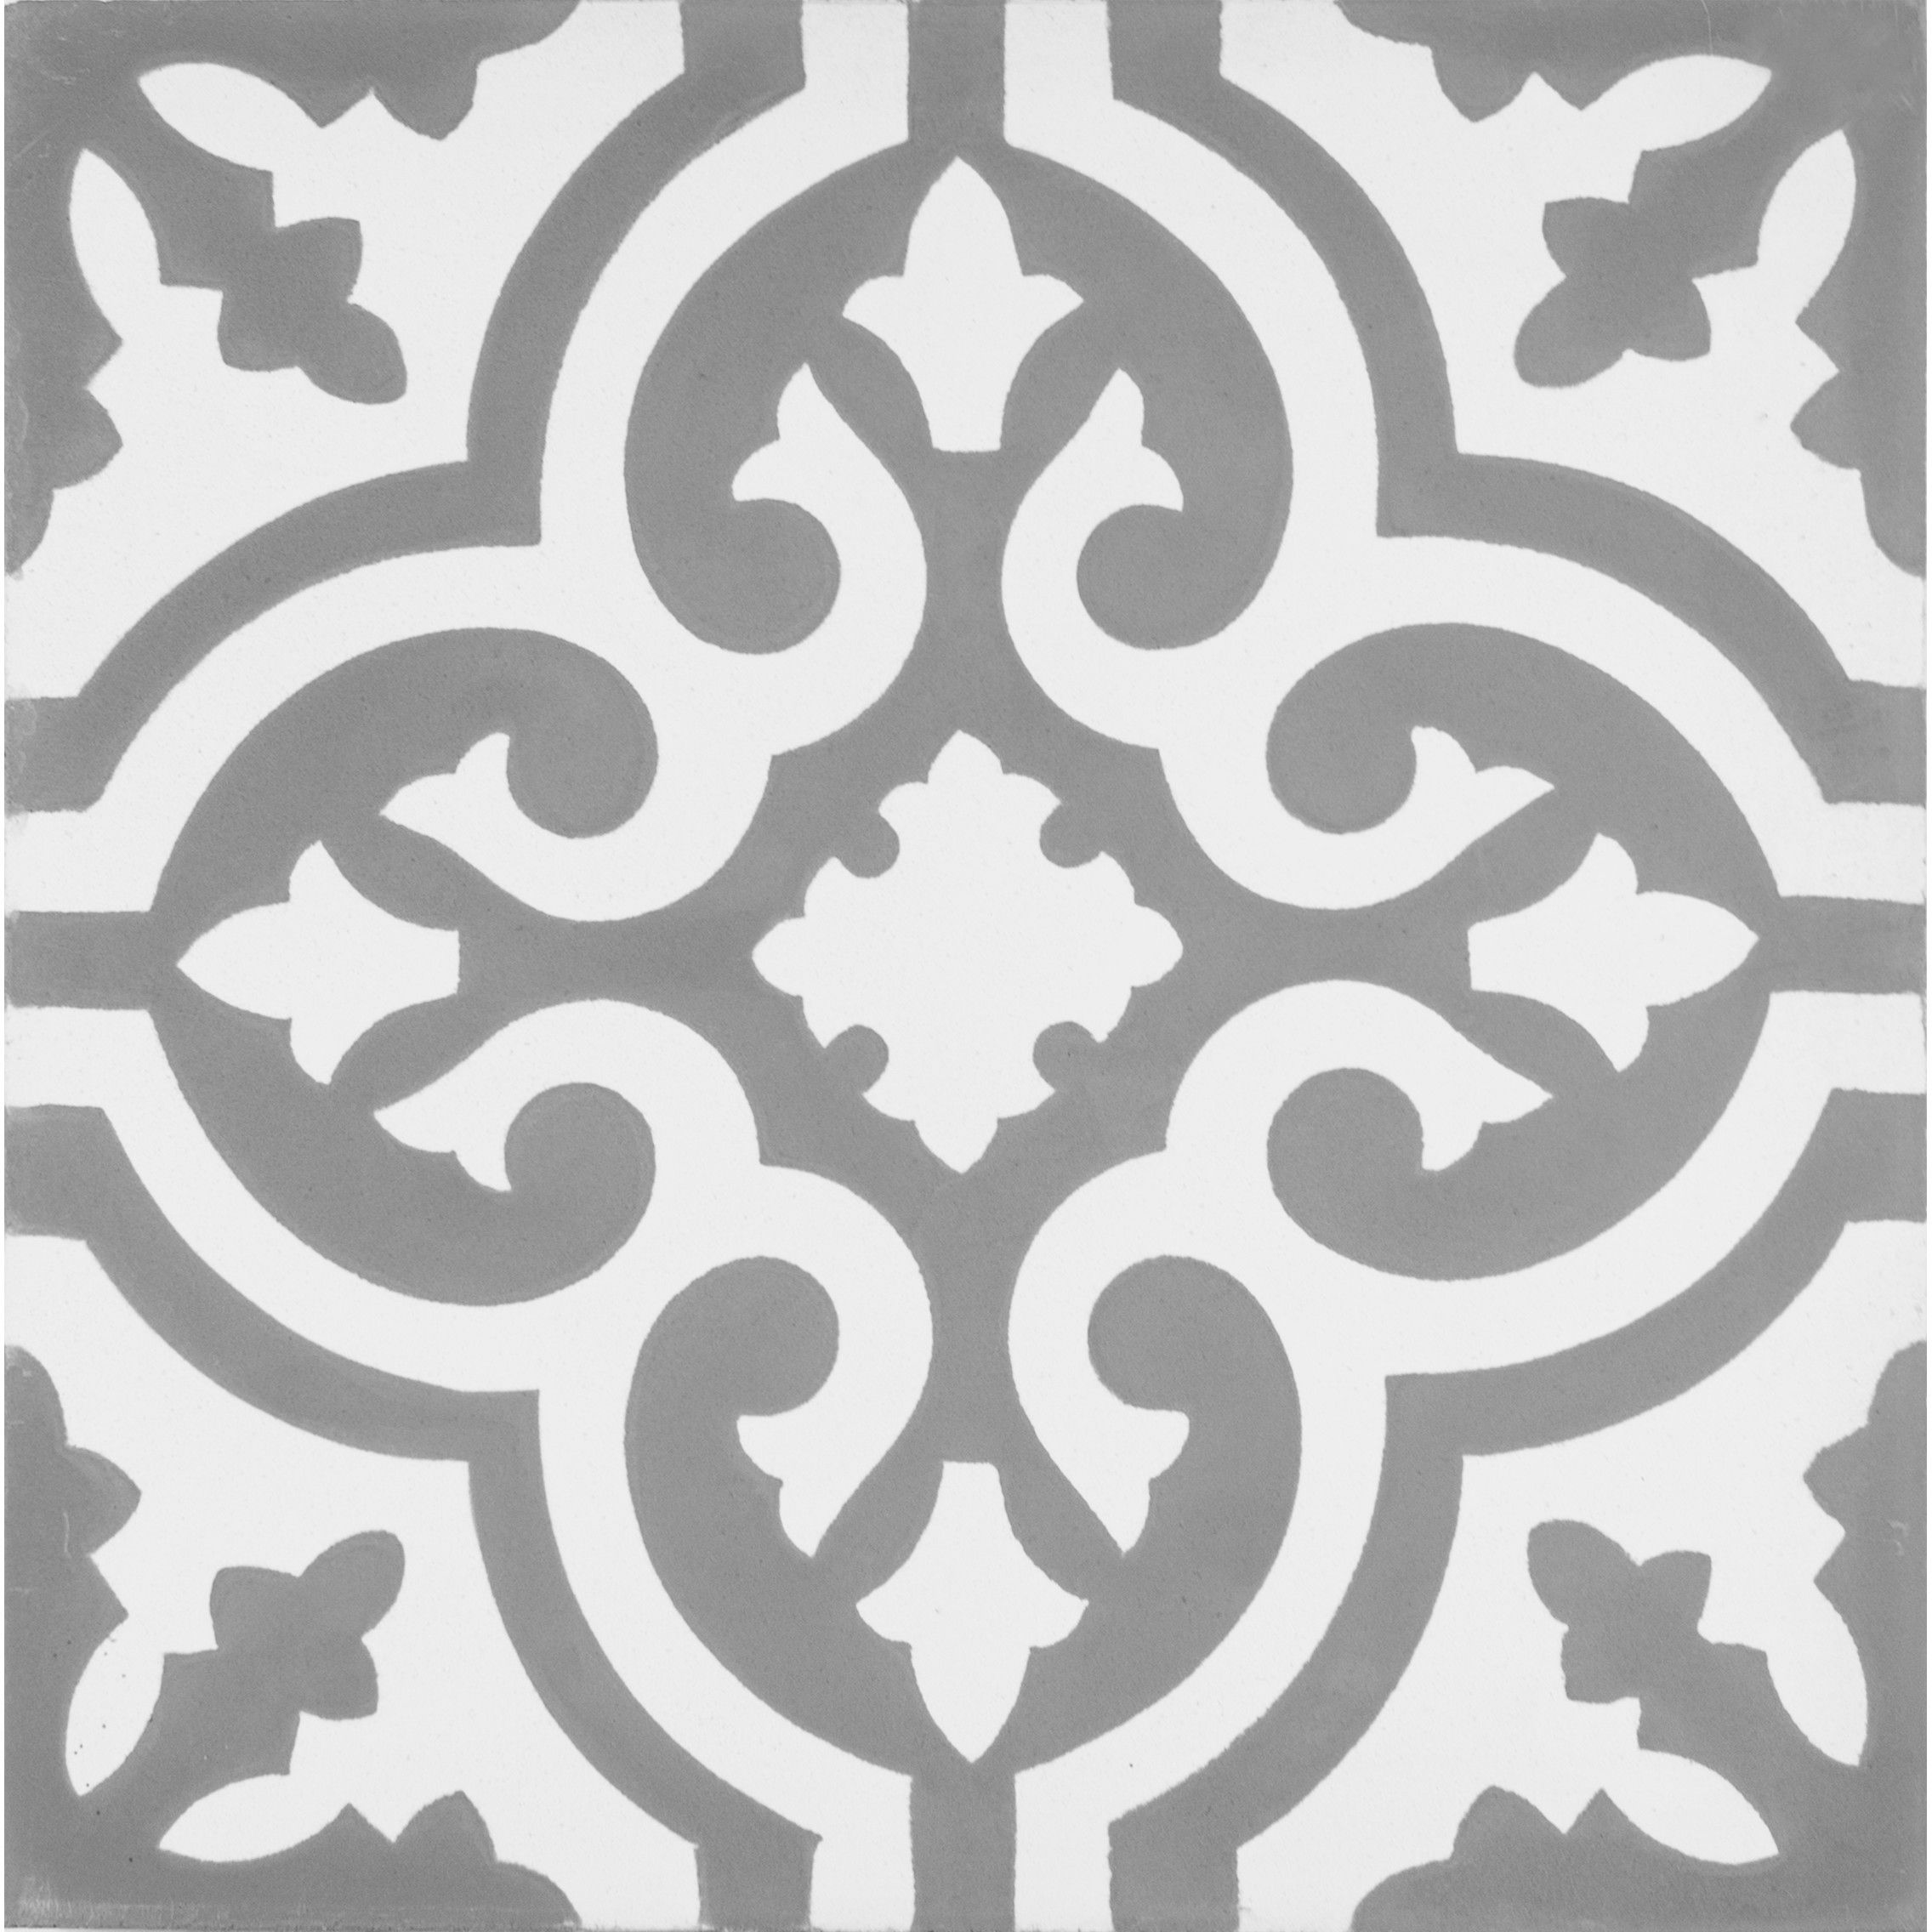 Kellani Mediterranea Floor Ii 8 Quot X 8 Quot Quarry Hand Painted Tile In Gray Beige Hand Painted Tiles Painting Tile Encaustic Tile